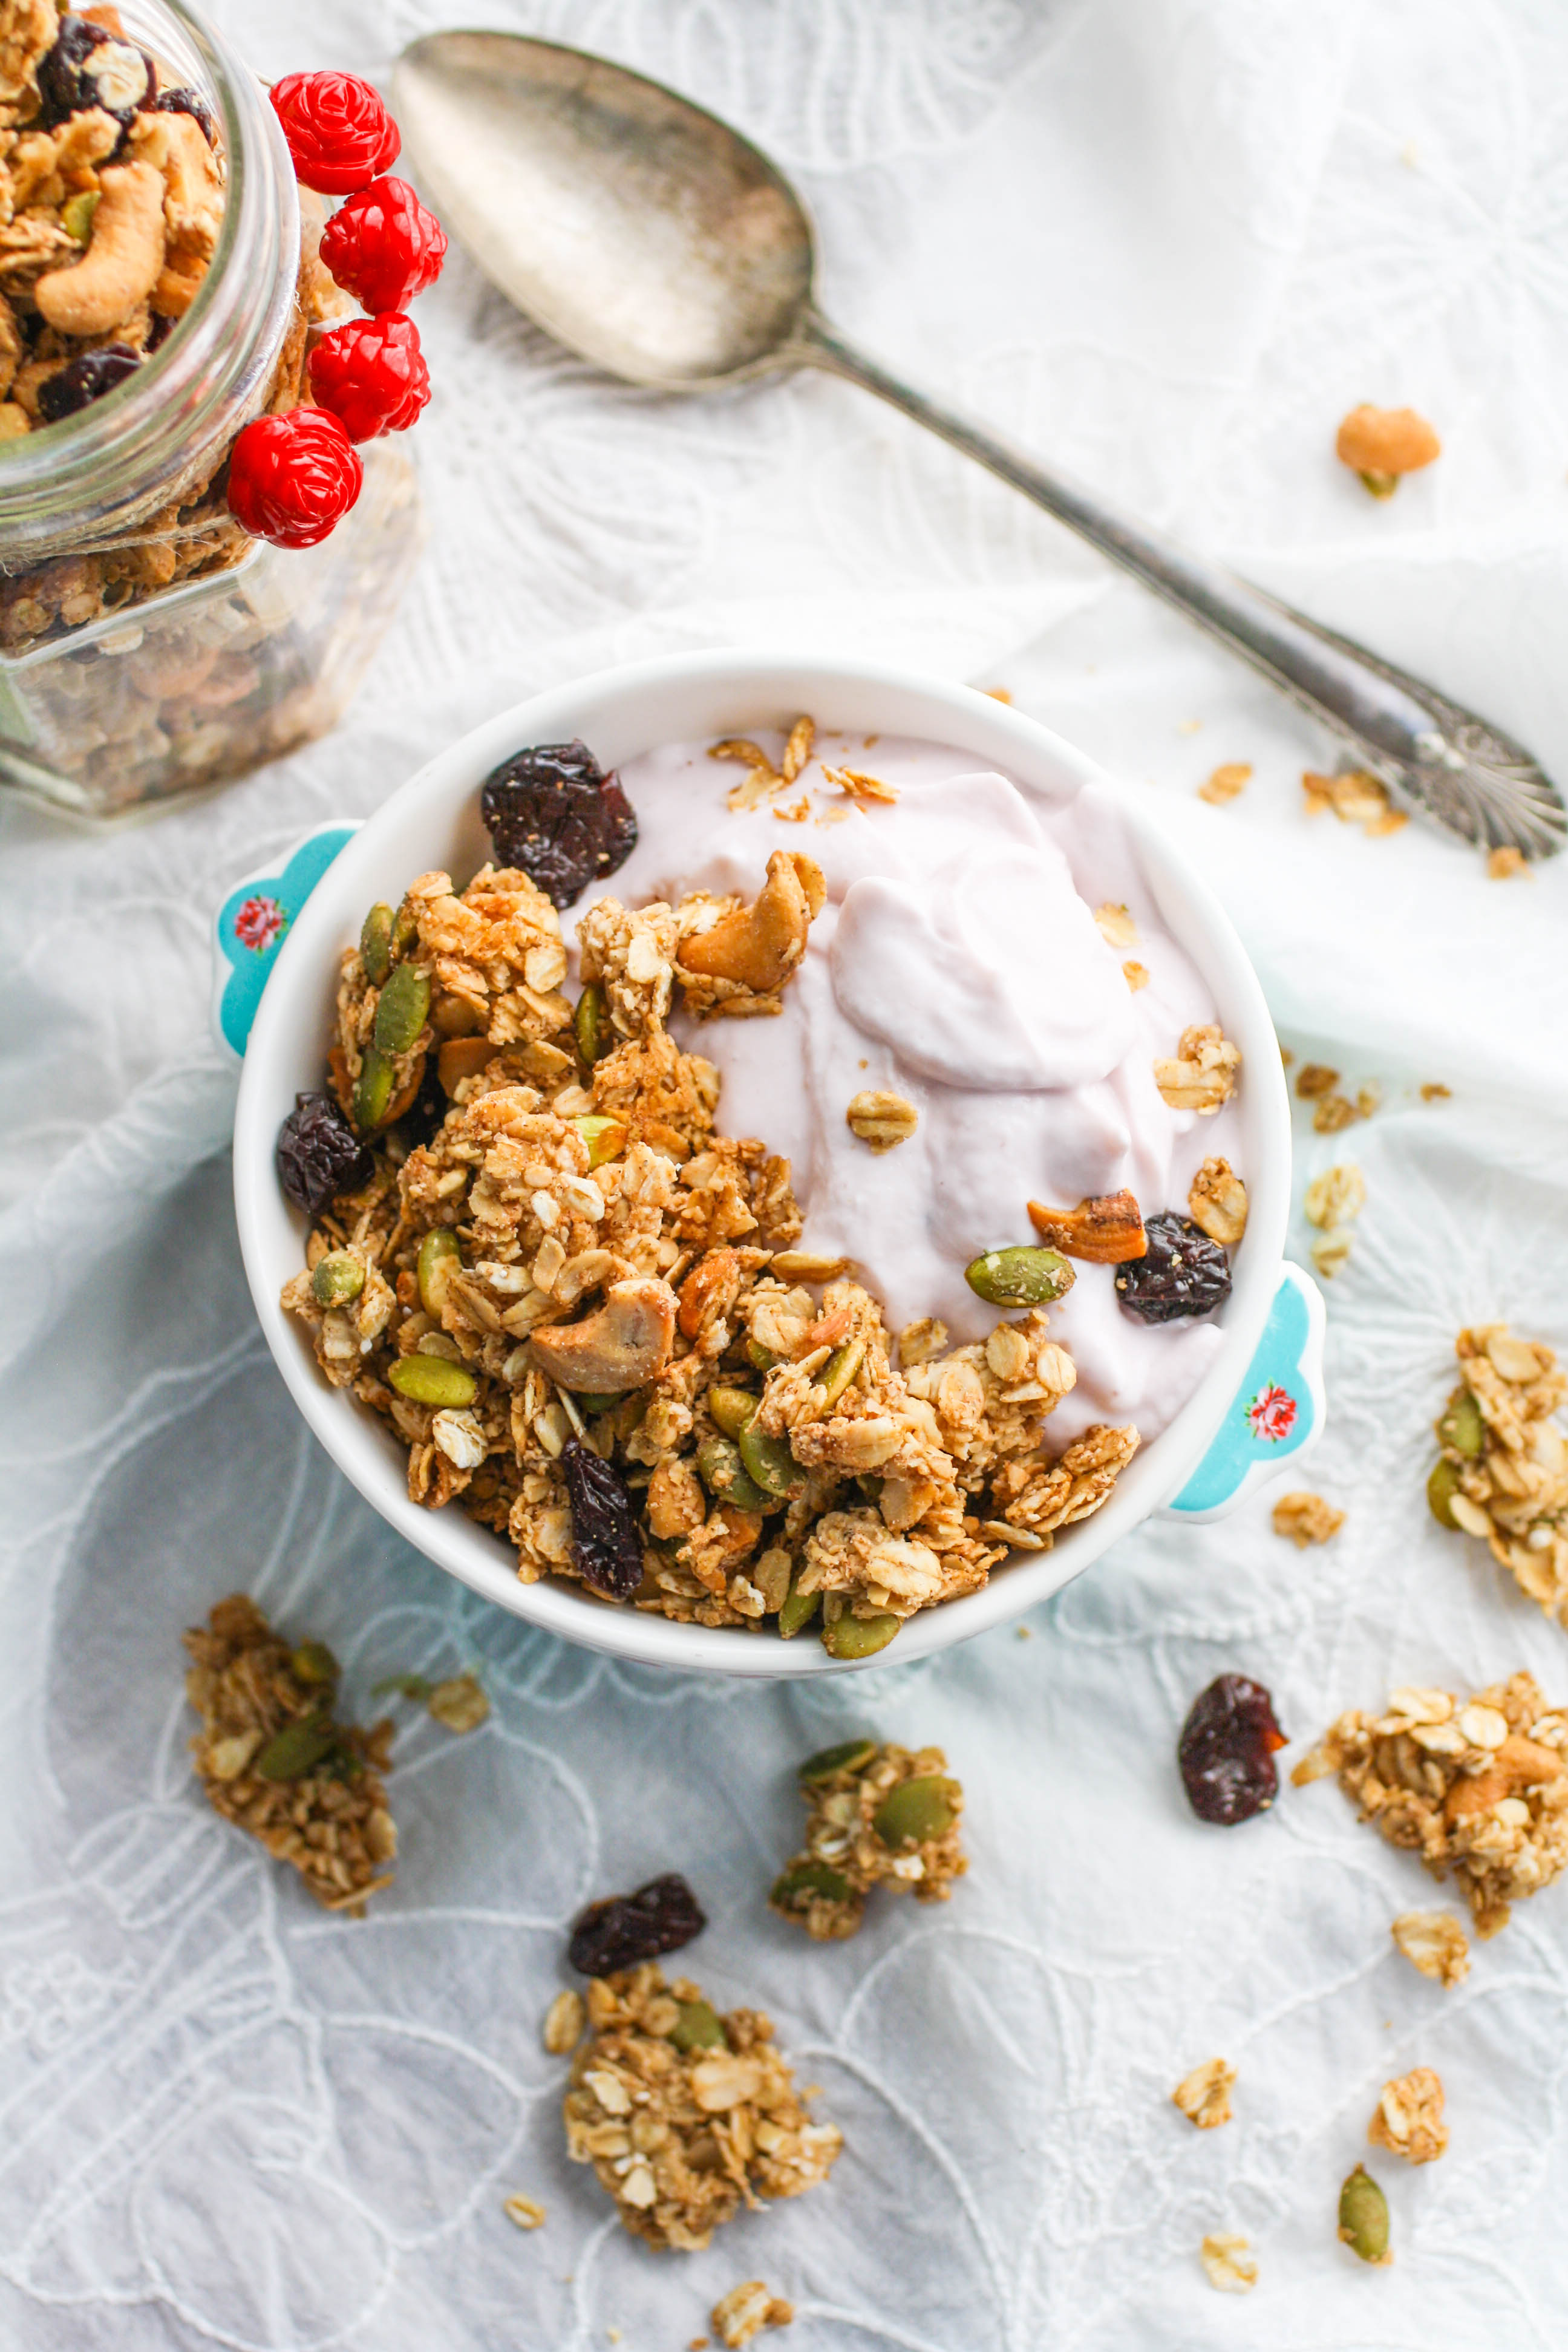 Chunky Cherry-Chai Granola is a wonderful addition to your morning meal. You'll love this homemade granola and how easy it is to make.